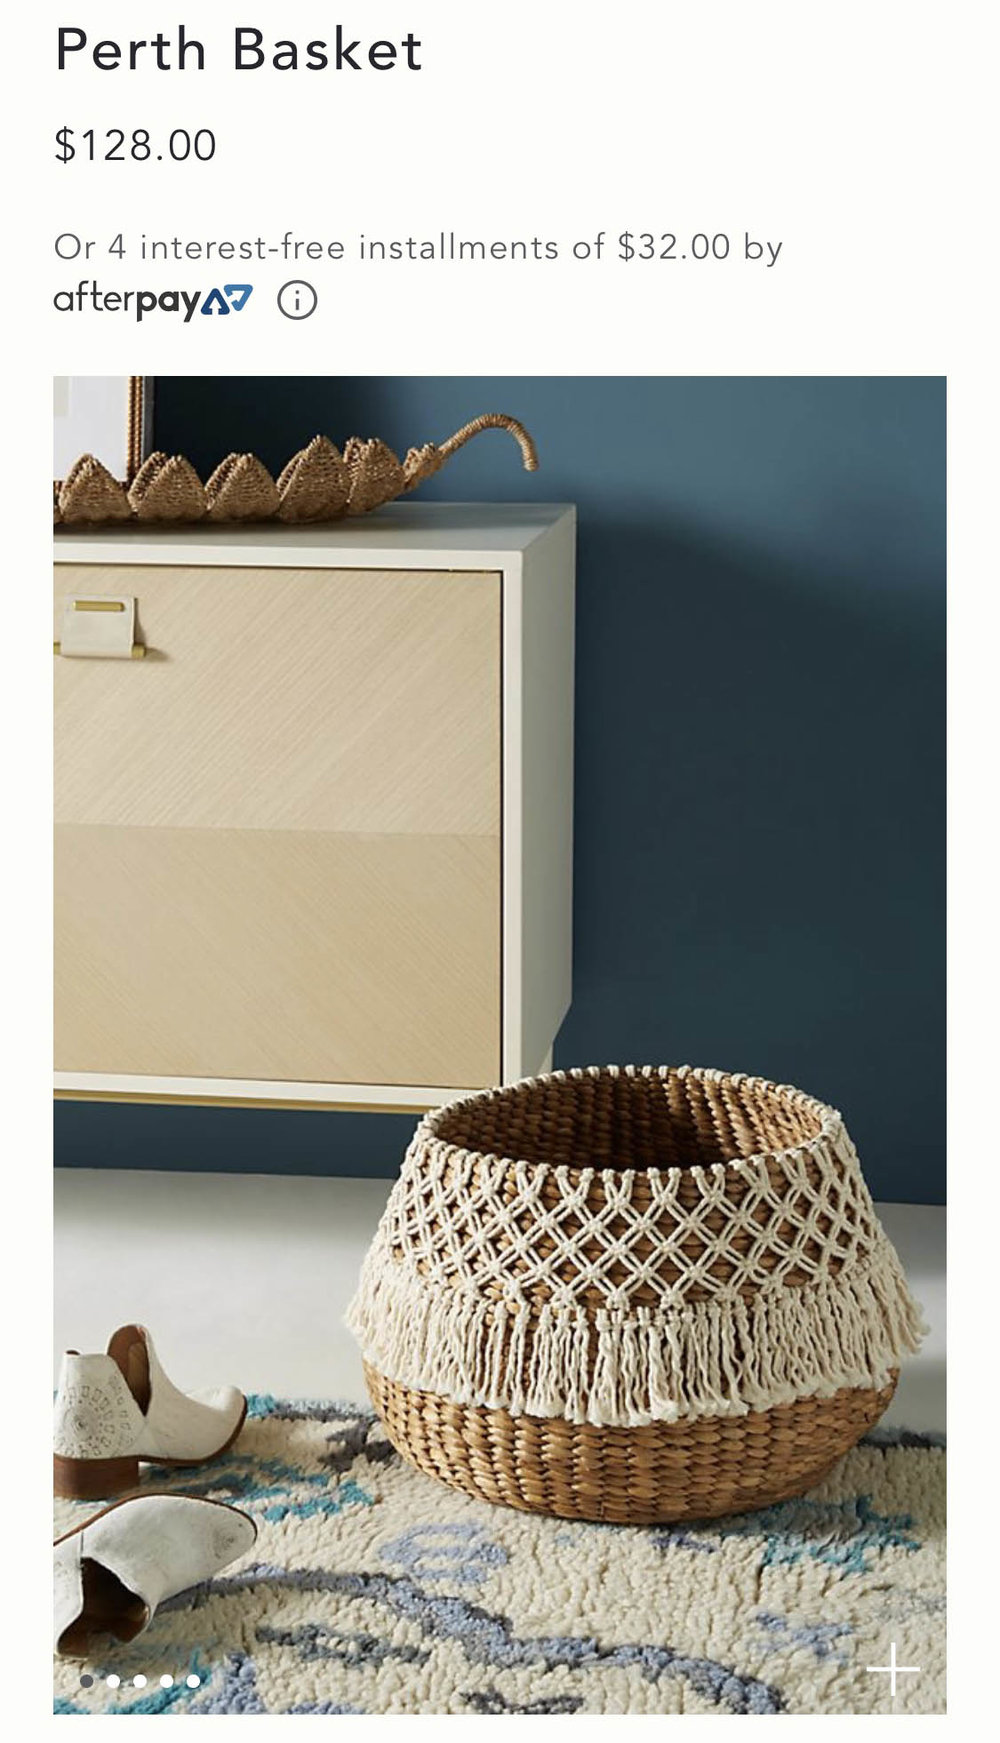 The Anthropologie basket that inspired this tutorial